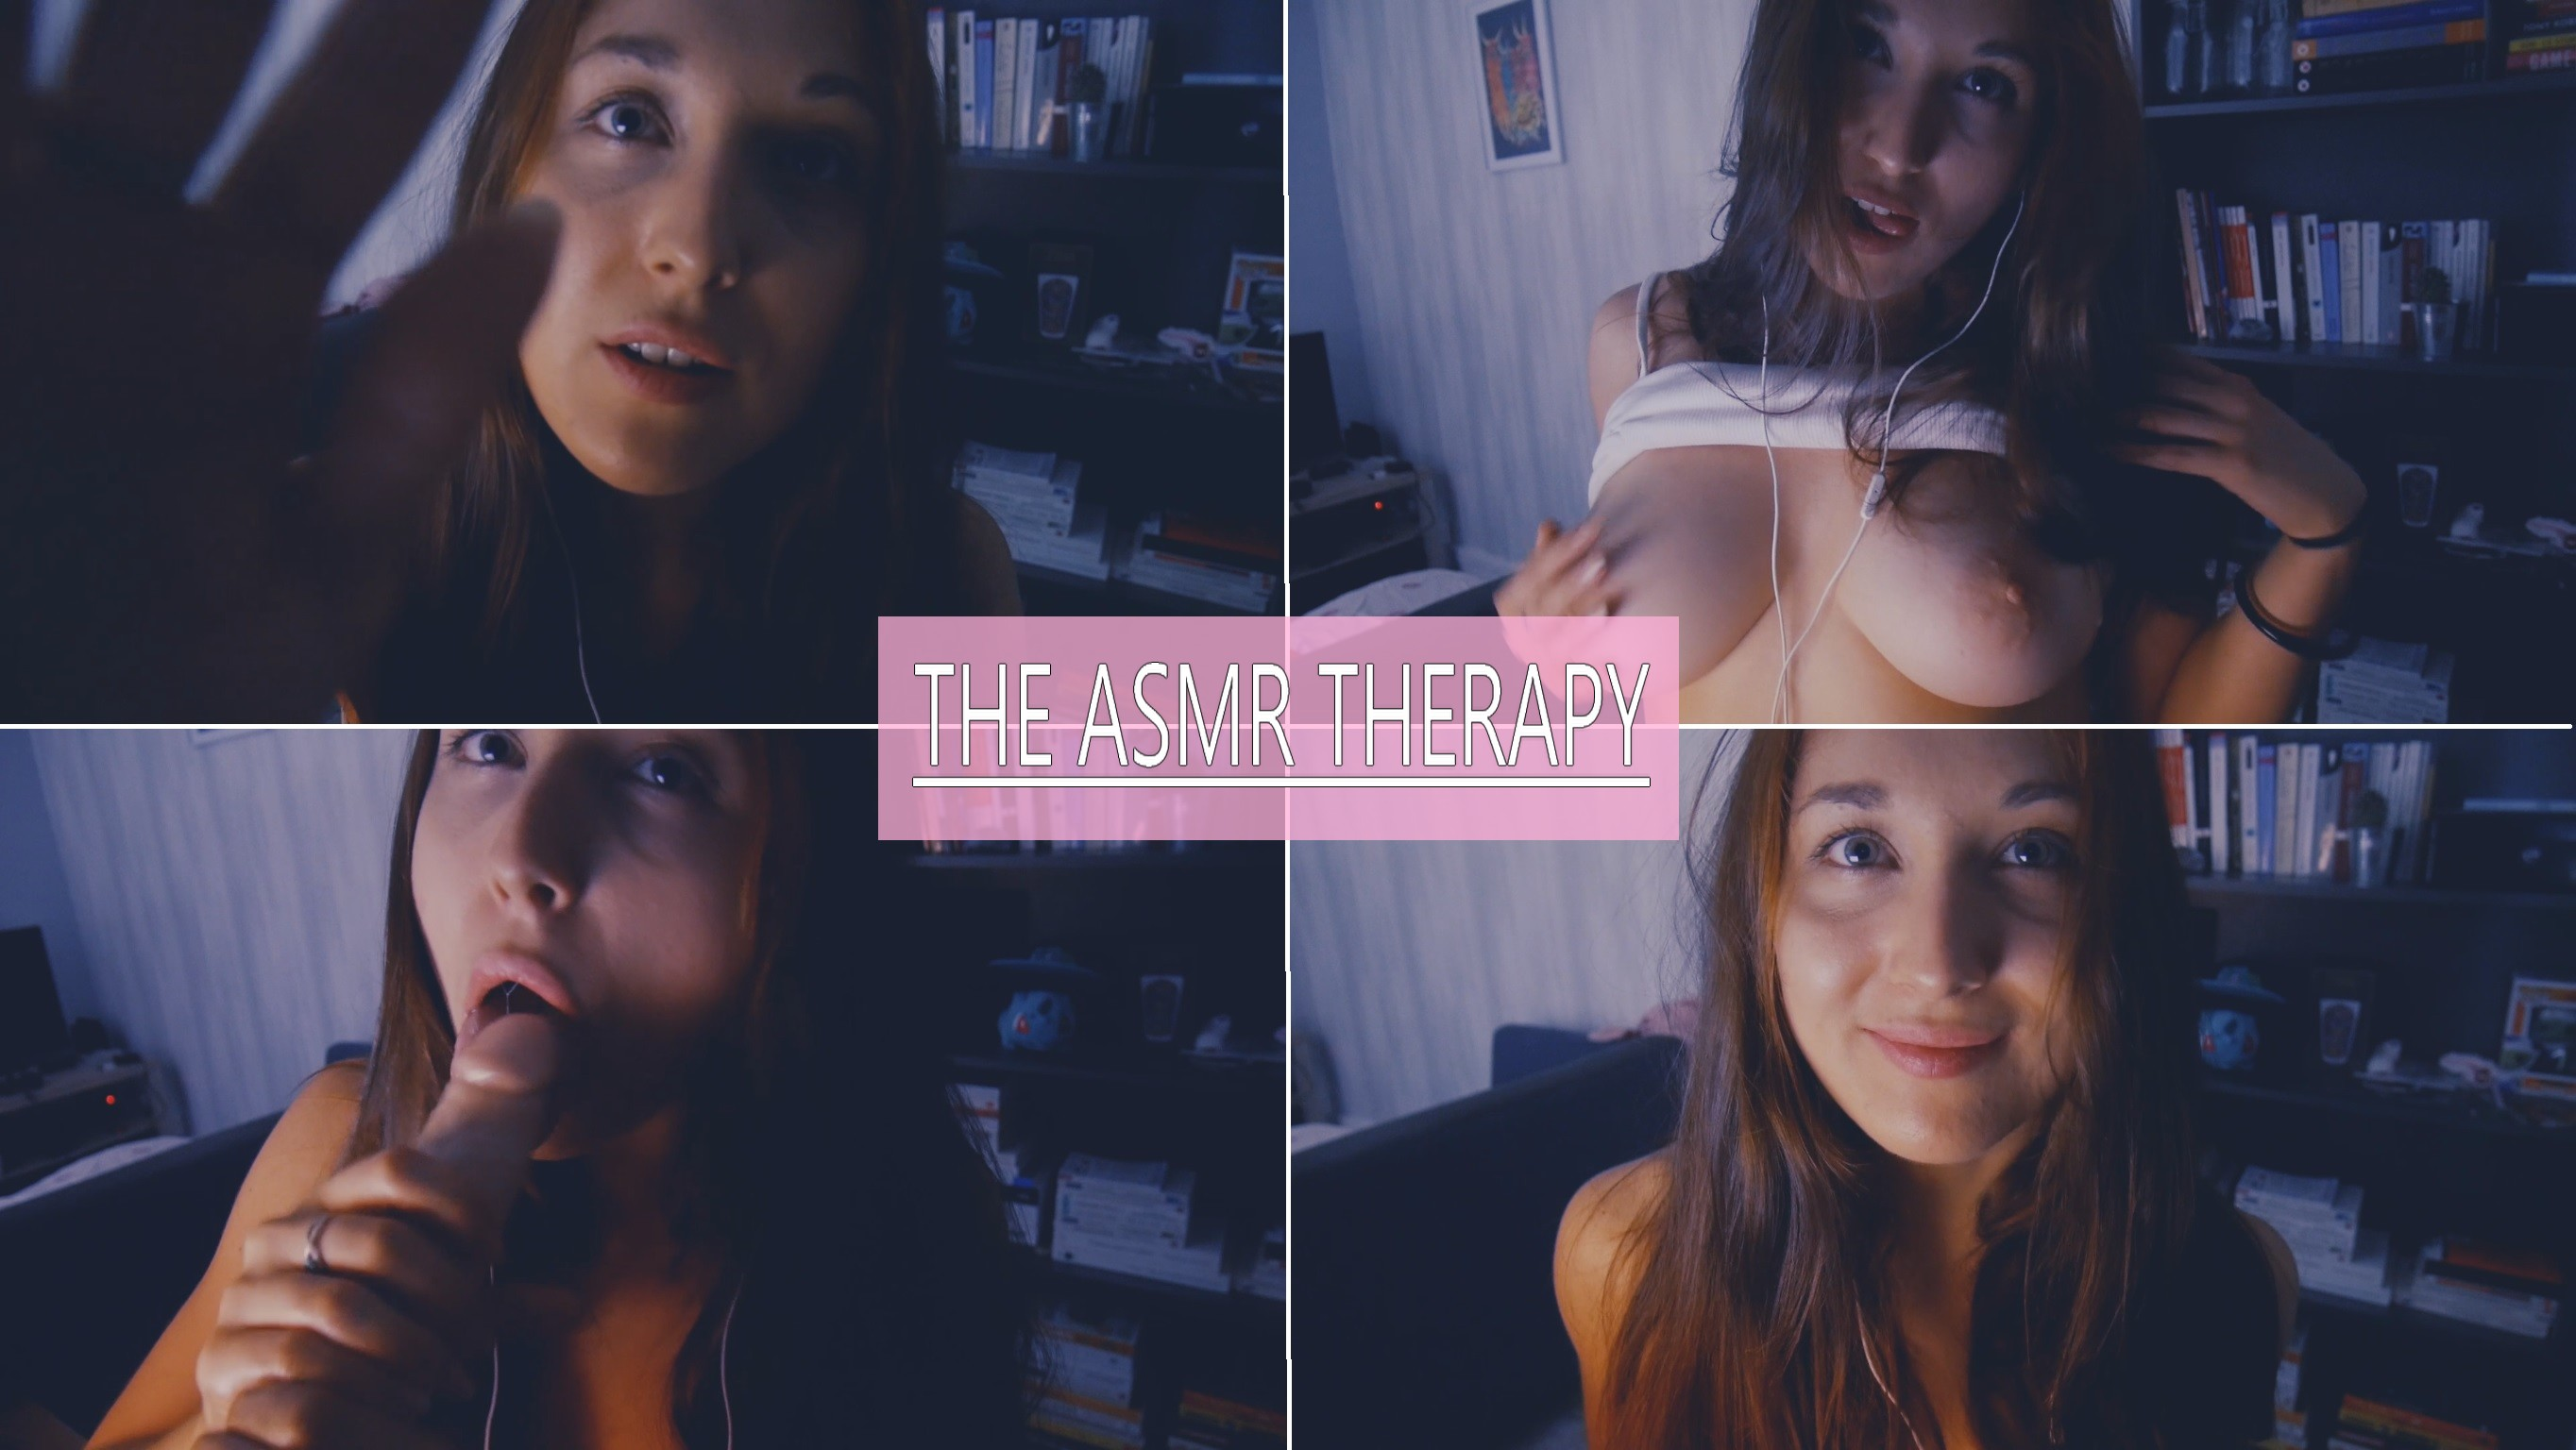 ASMR RP - The ASMR Therapy.